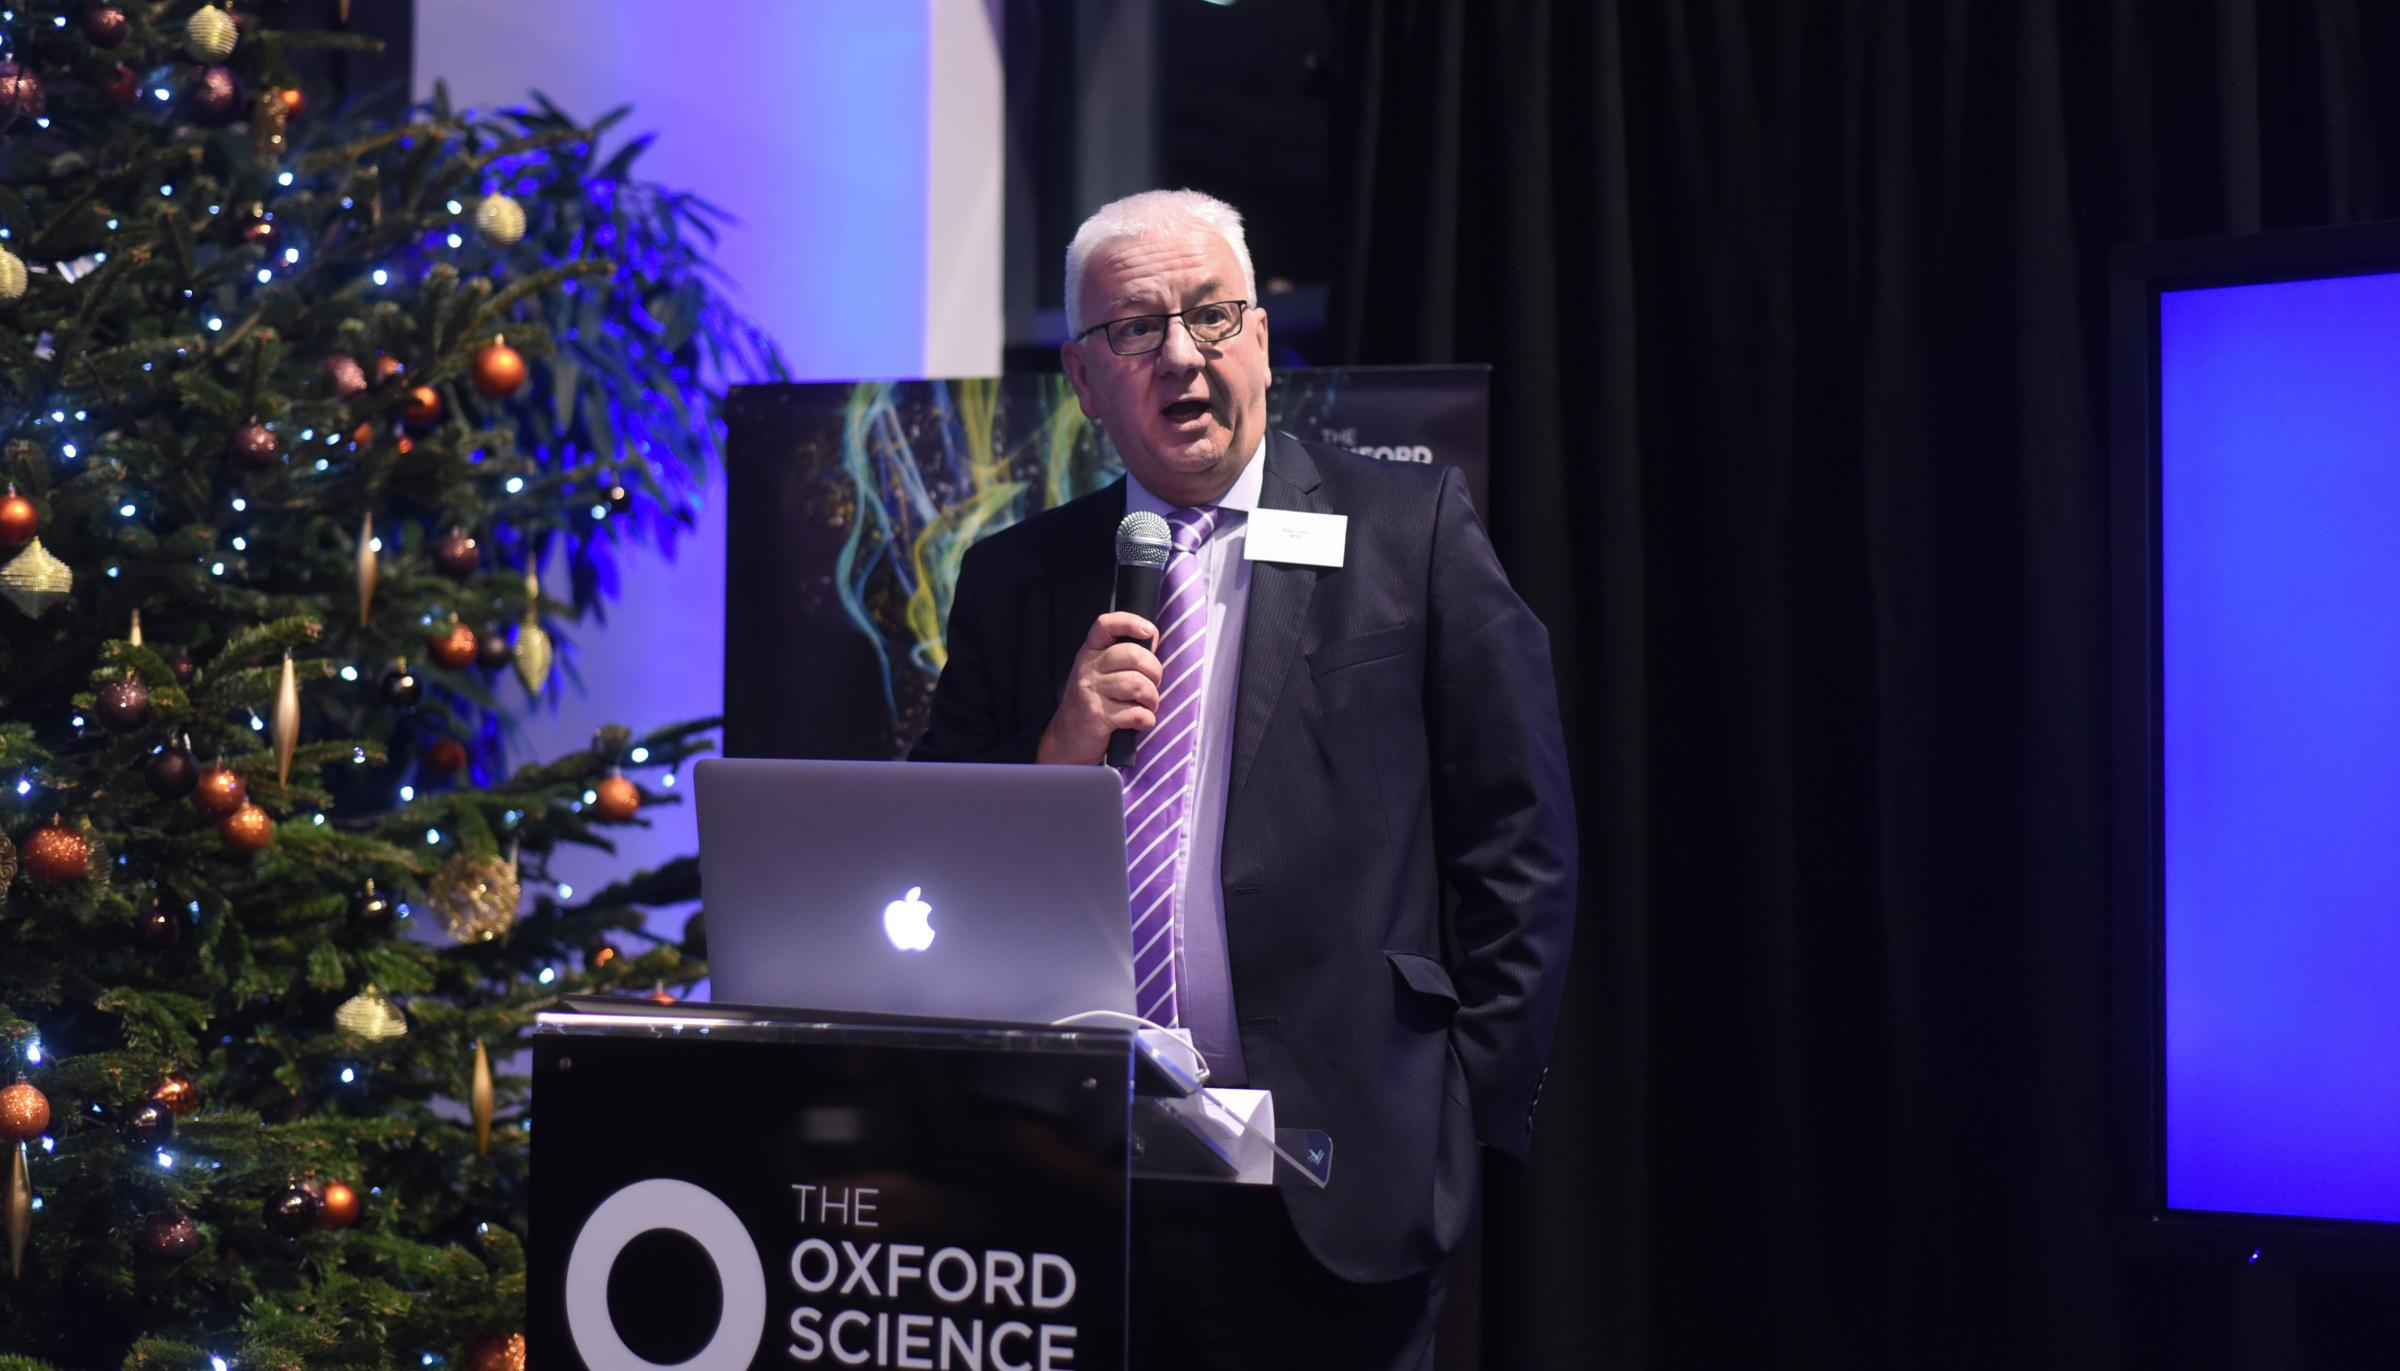 Oxfordshire Business Awards chairman Paul Lowe launches the 2018 Oxfordshire Business Awards at The Sadler Building, Oxford Science Park. Picture Richard Cave